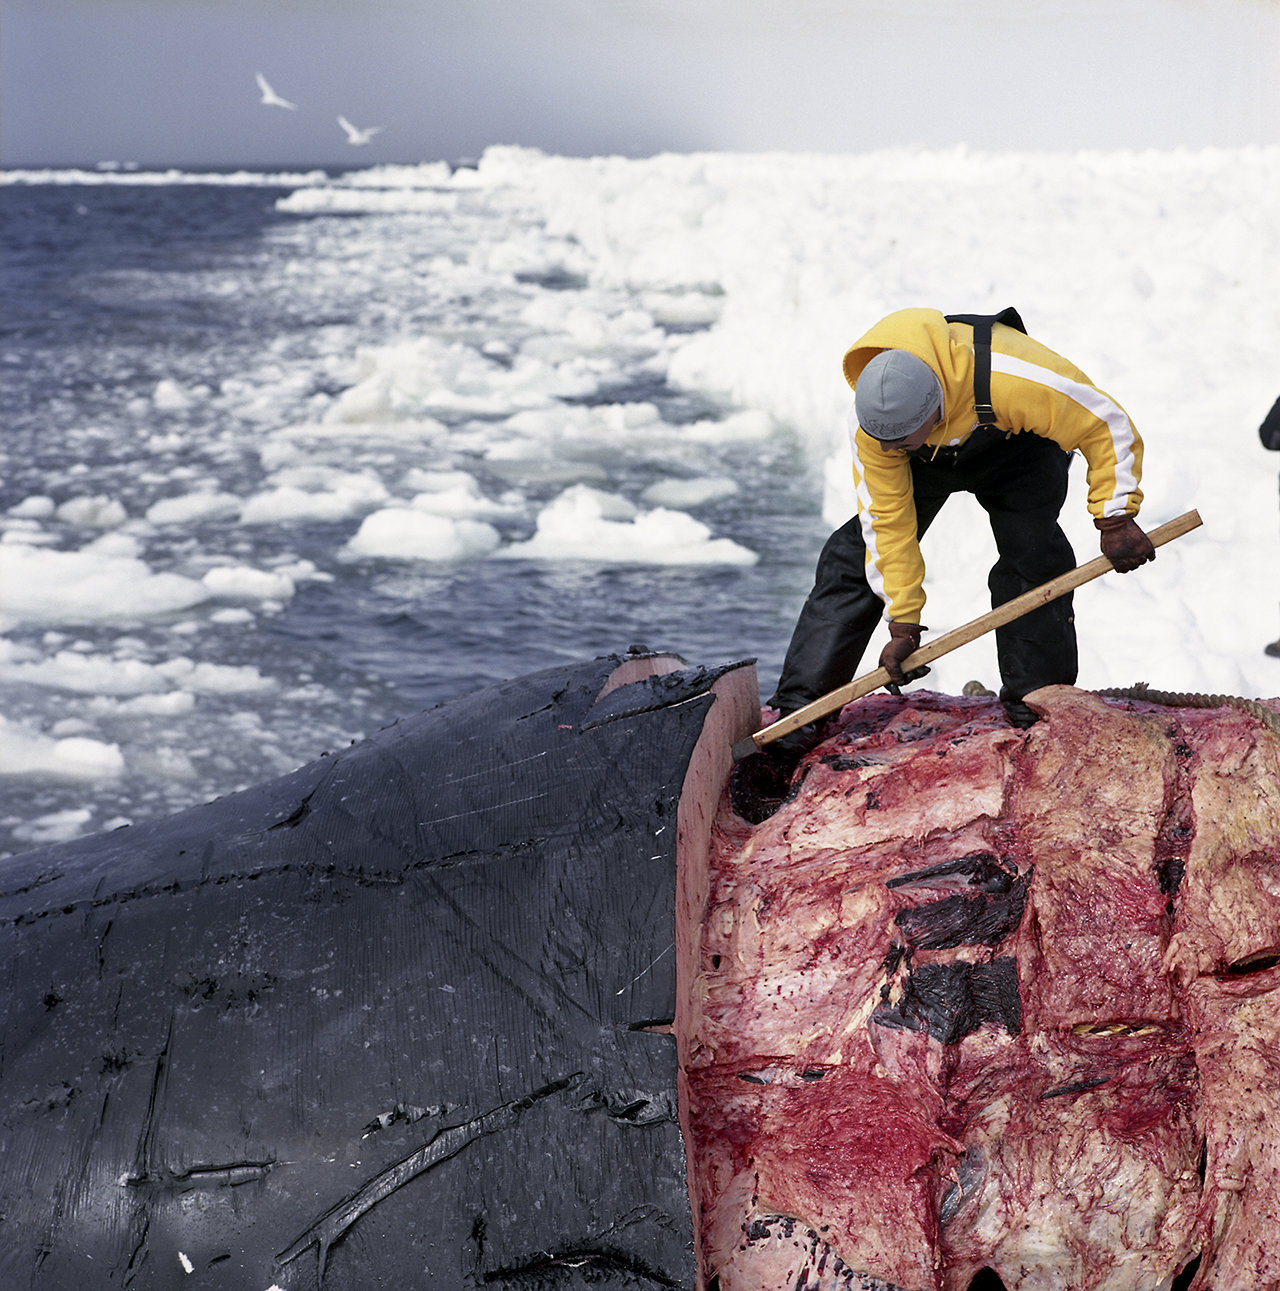 Randy cutting up the whale, 2009